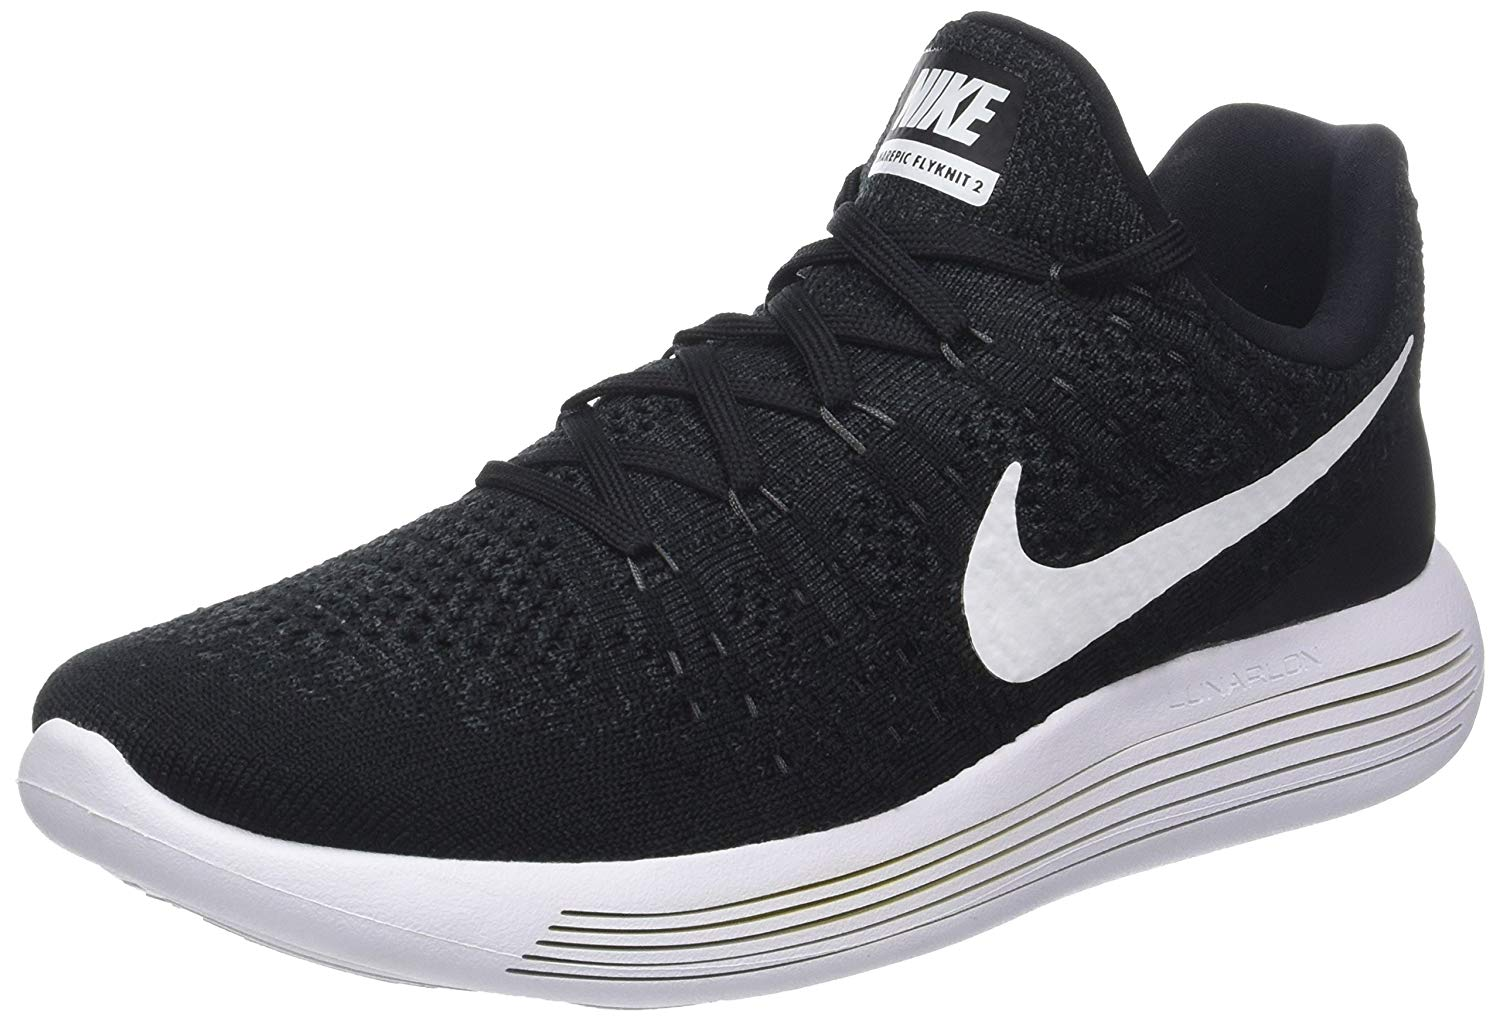 new design 50% price outlet store Nike LunarEpic Low Flyknit 2 Reviewed for Performance